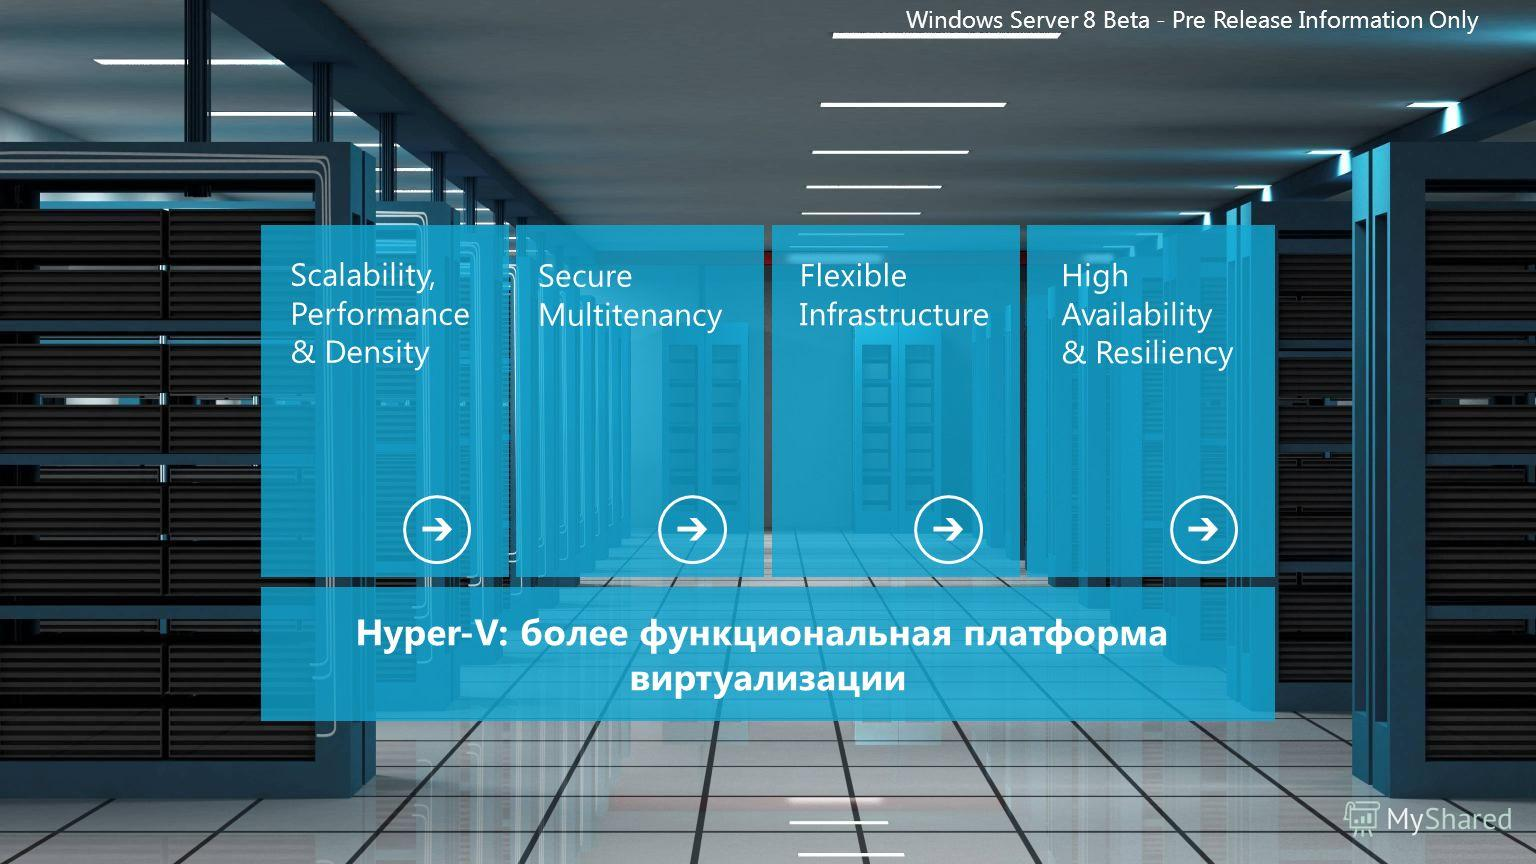 Scalability, Performance & Density Secure Multitenancy Flexible Infrastructure High Availability & Resiliency Windows Server 8 Beta - Pre Release Information Only Hyper-V: более функциональная платформа виртуализации